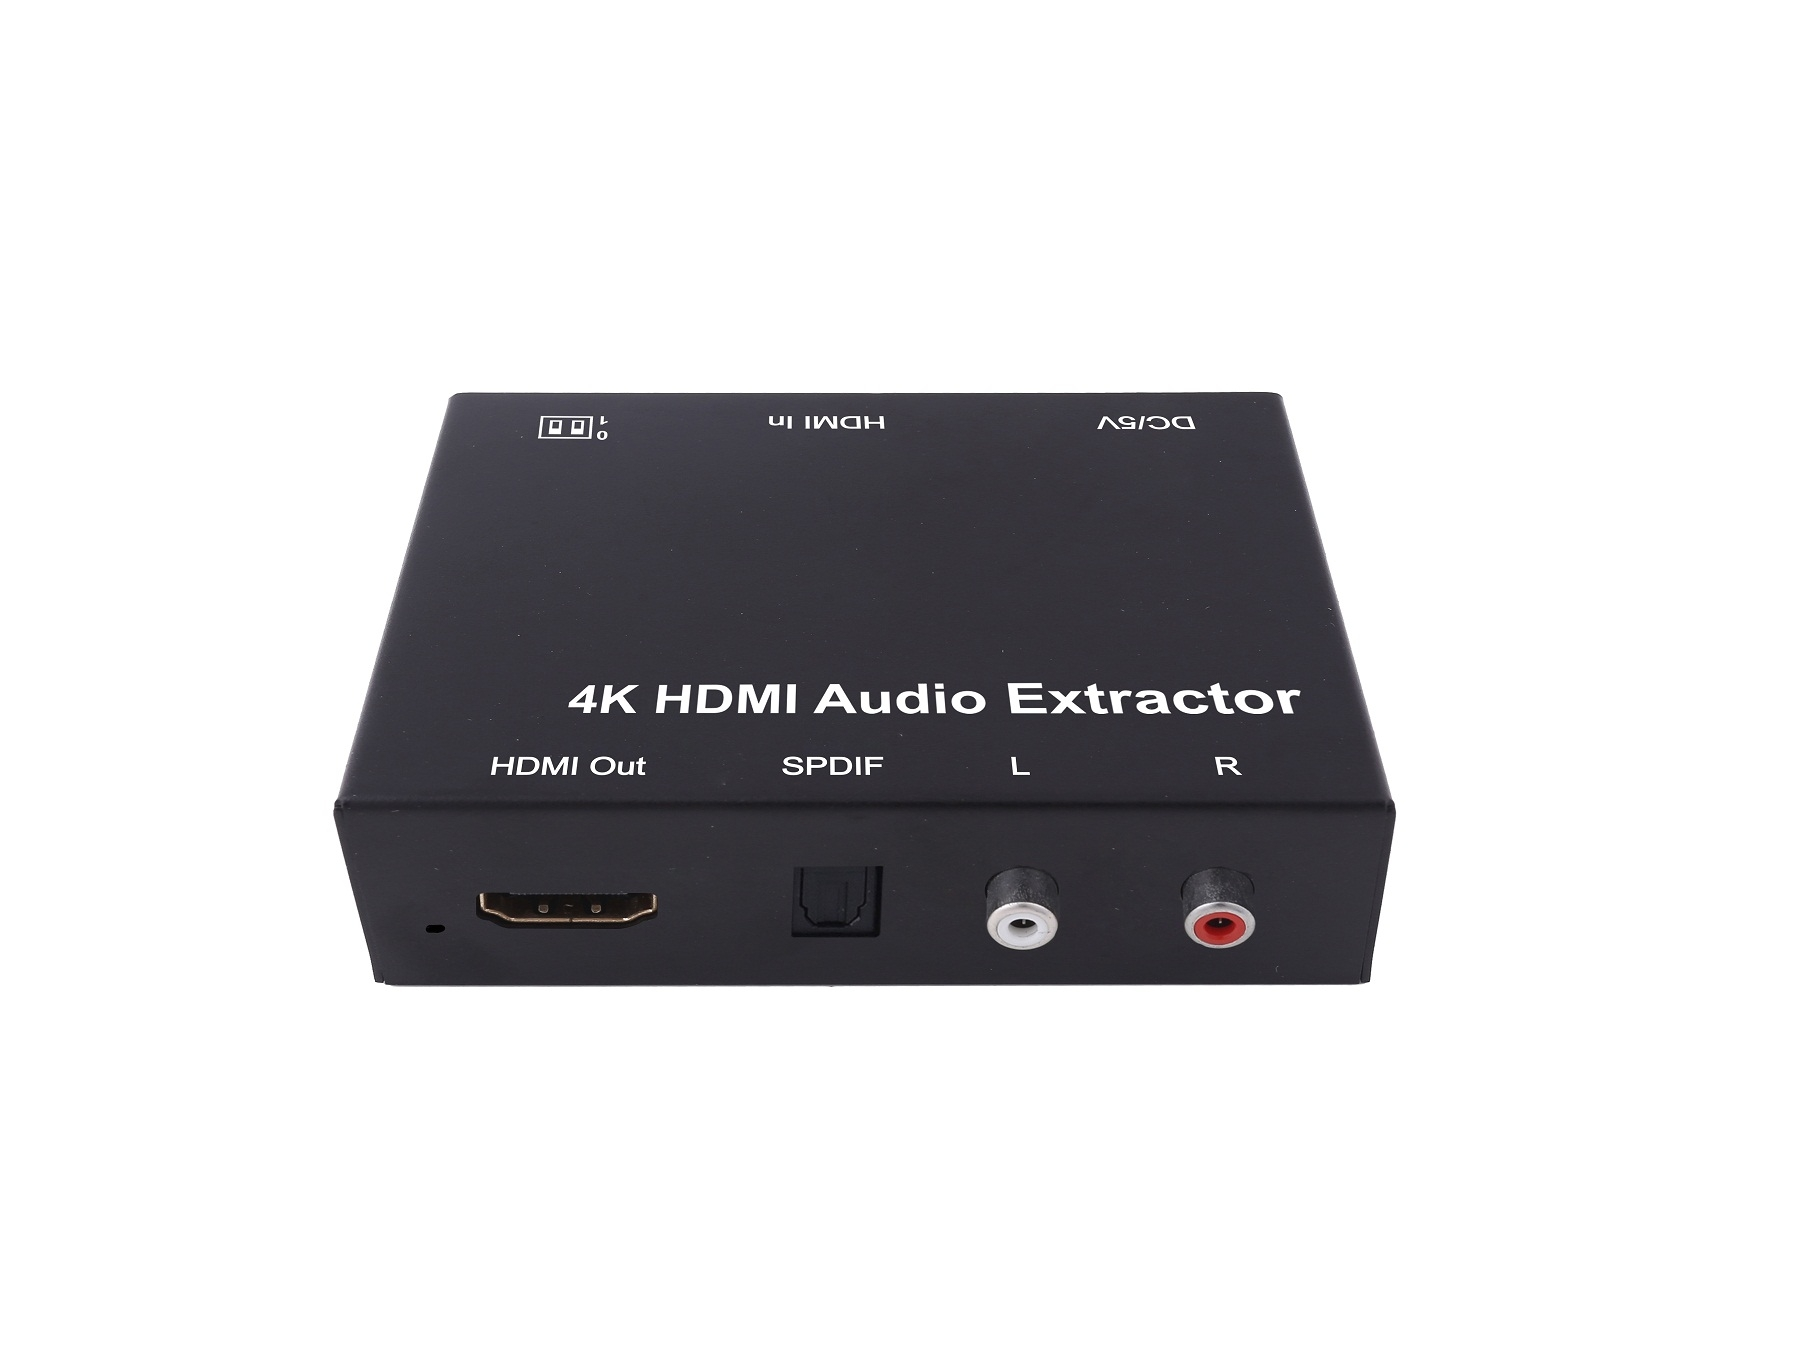 4k HDMI Audio Extractor